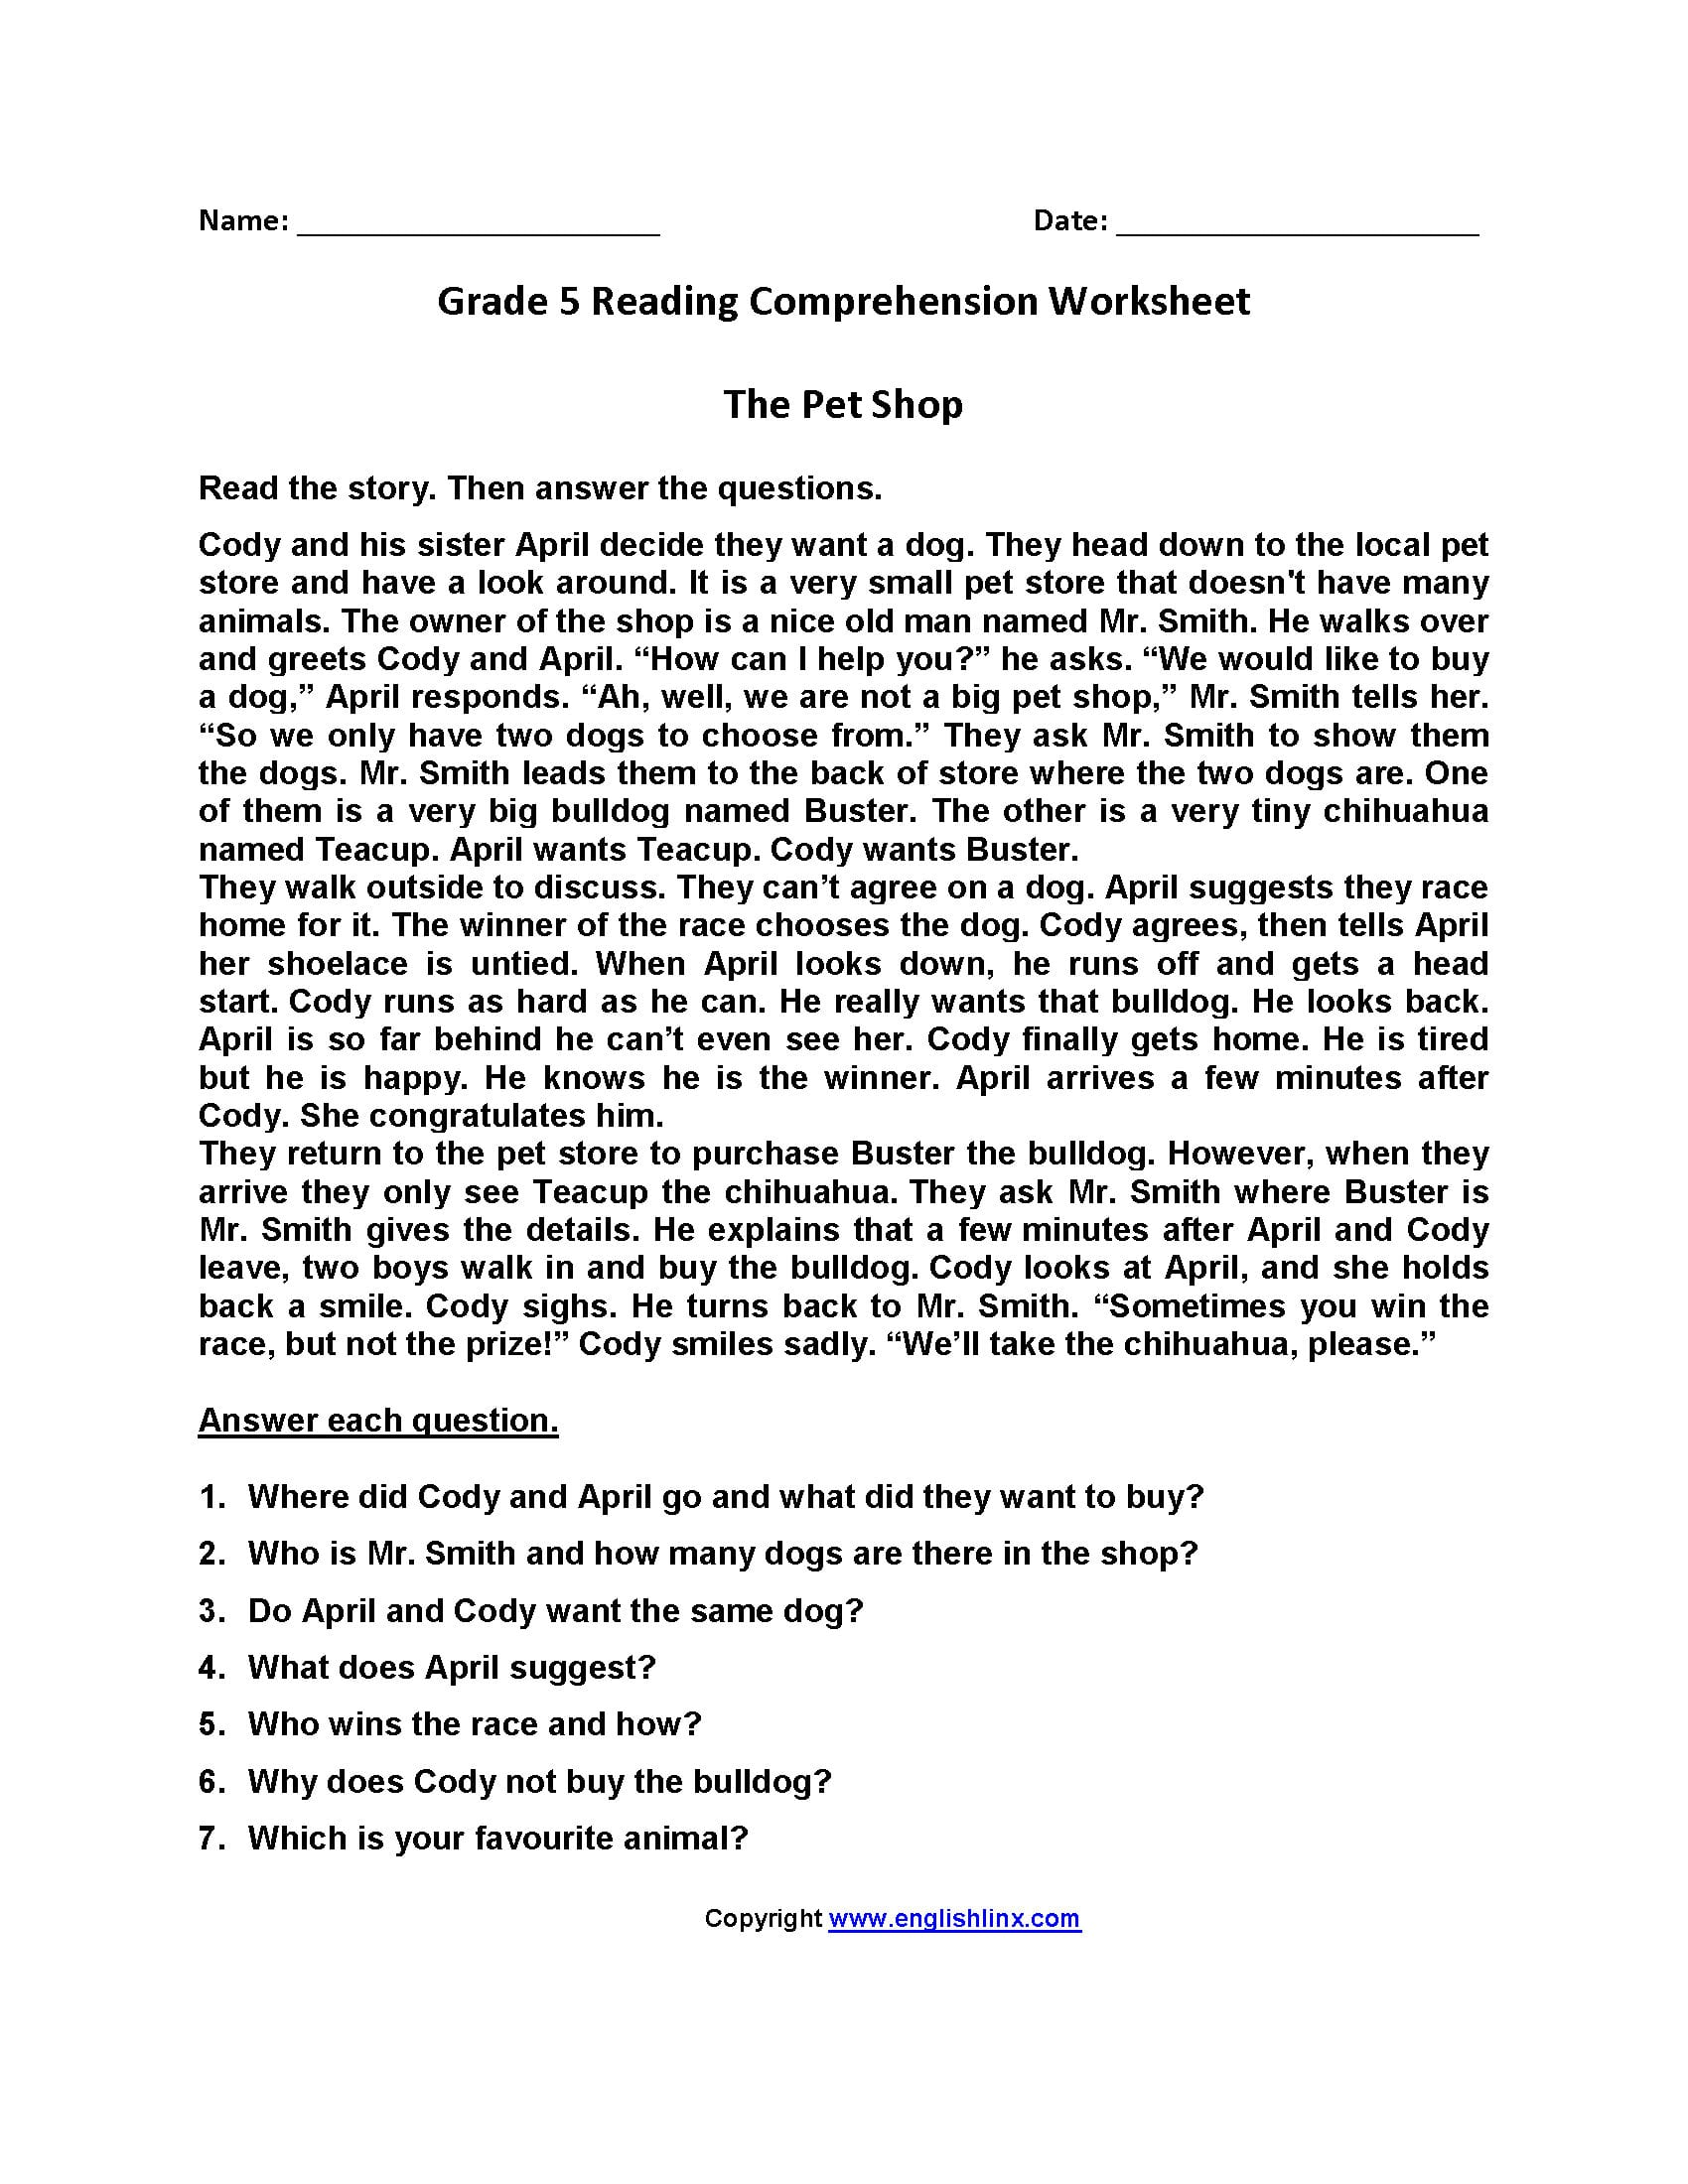 - Reading Comprehension For Grade 7 With Questions And Answers لم